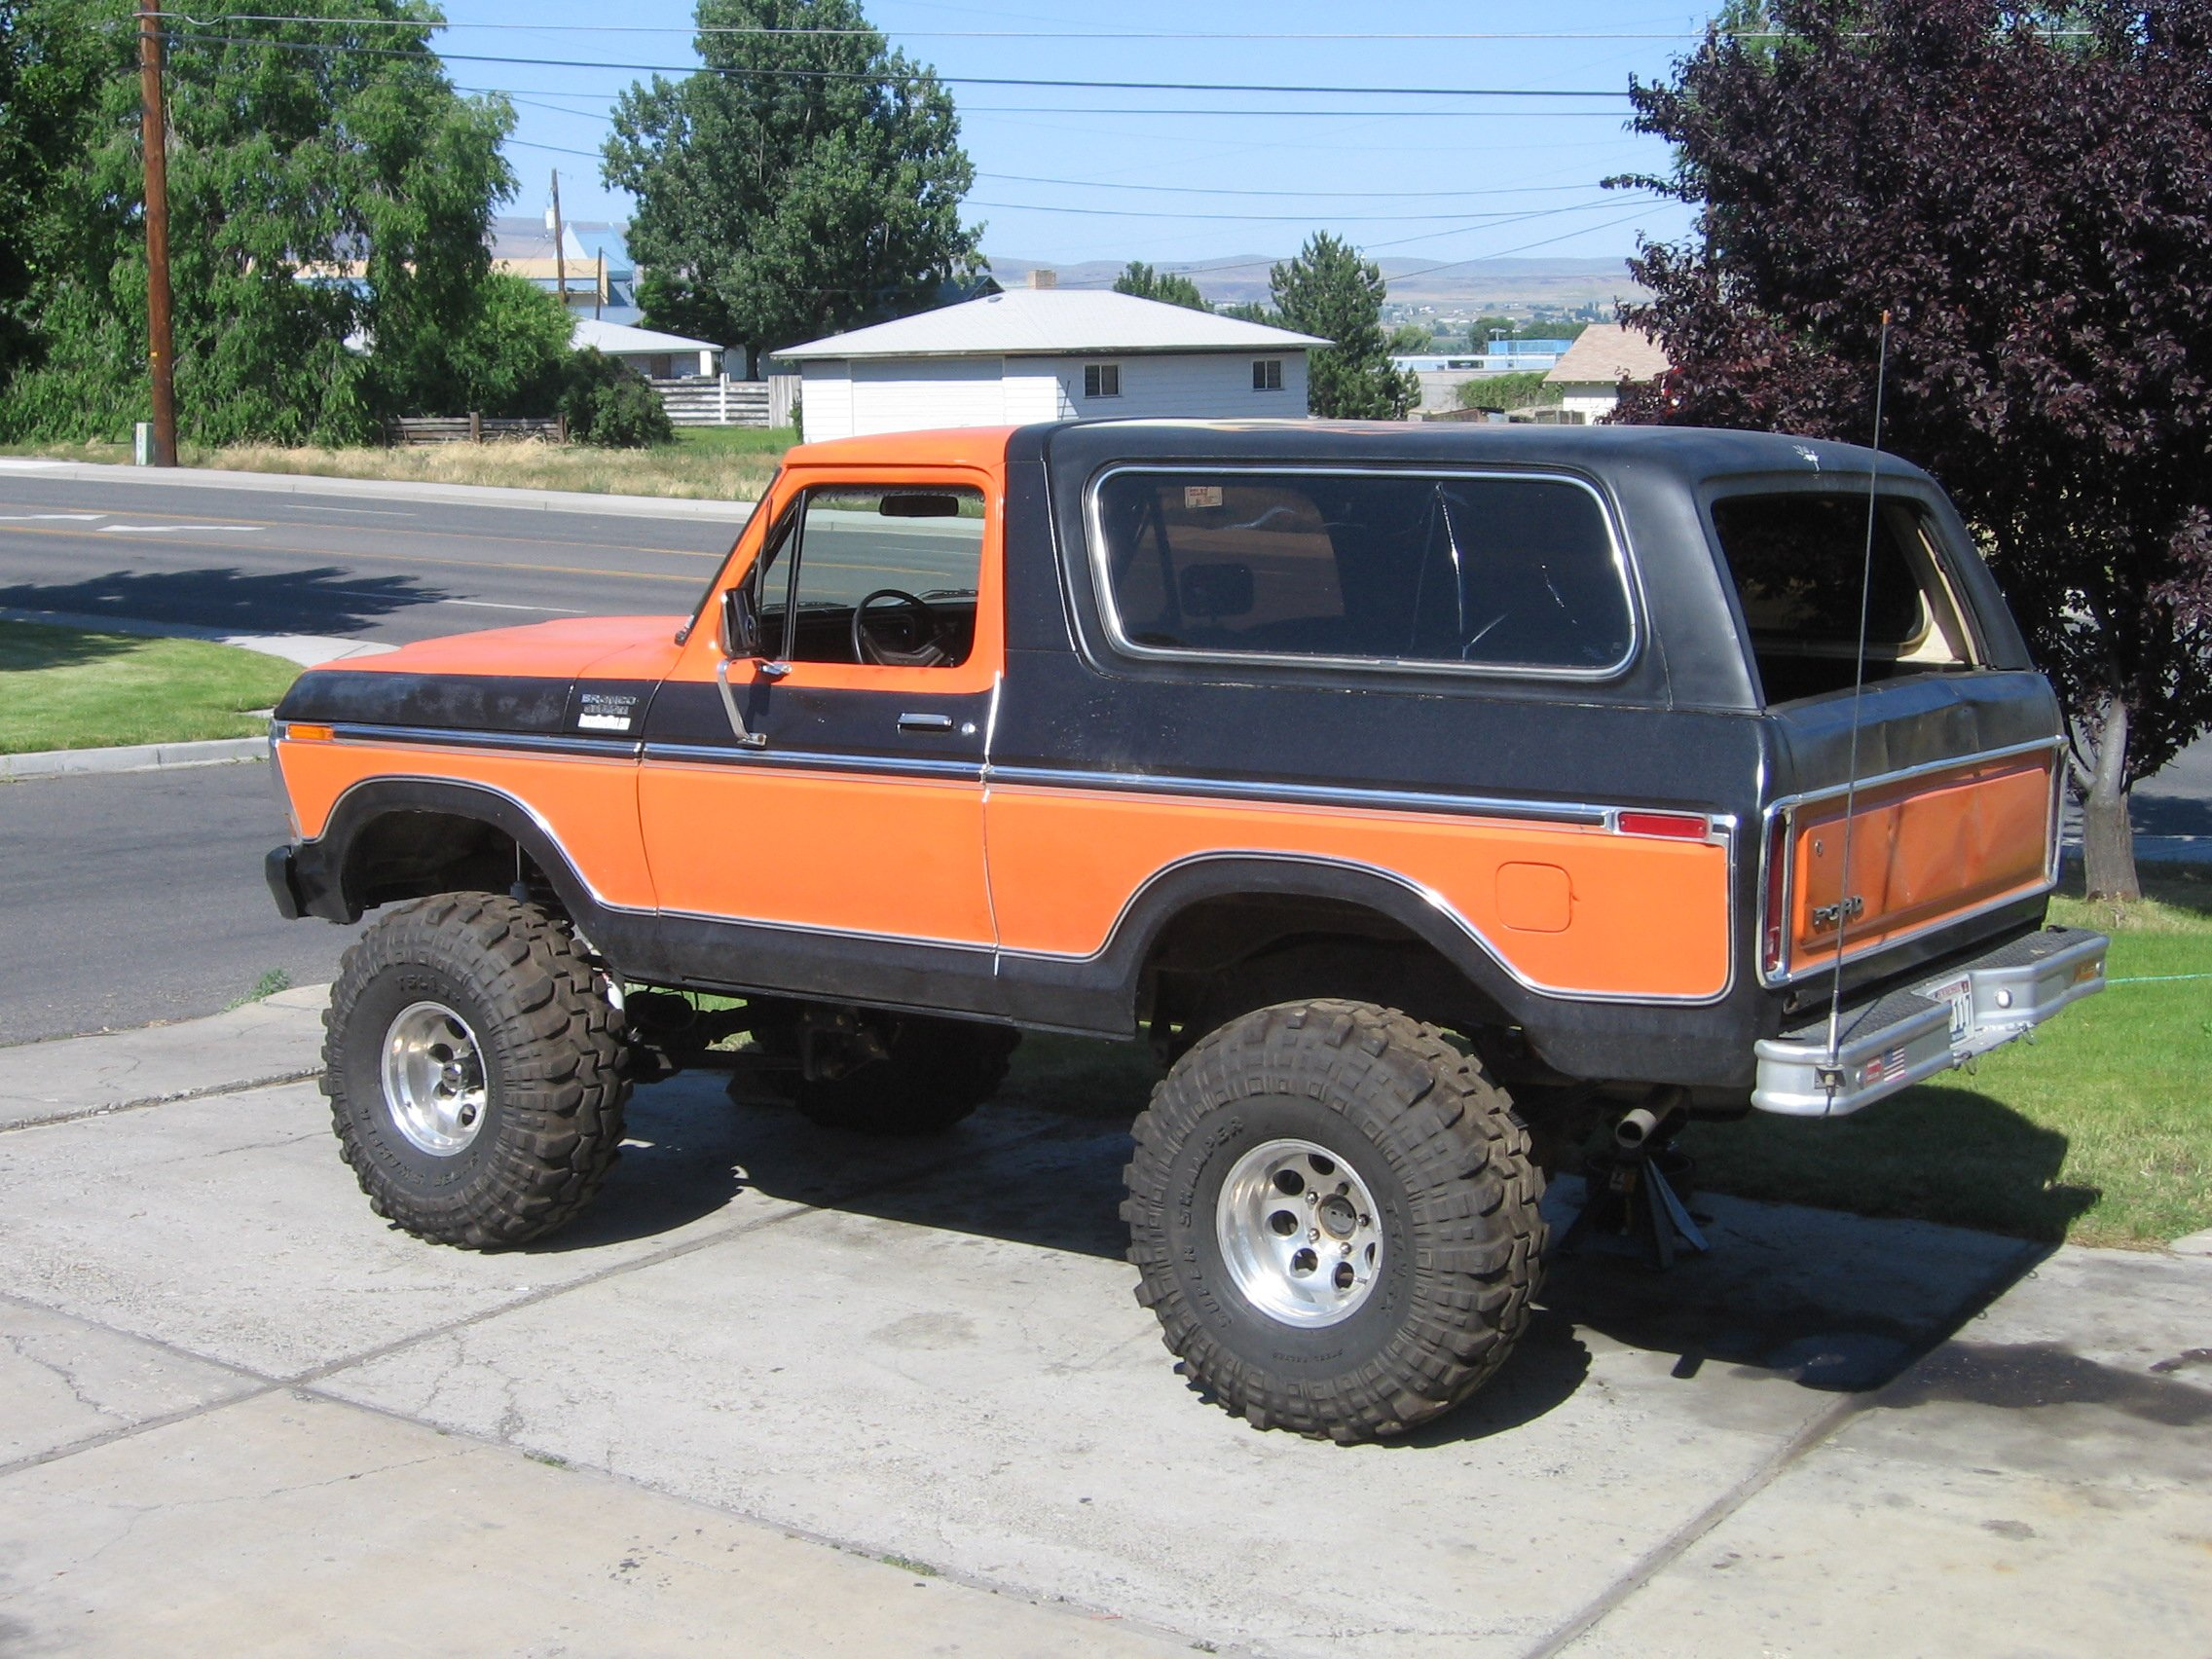 FORD BRONCO suv 4x4 truck wallpaper background 2272x1704